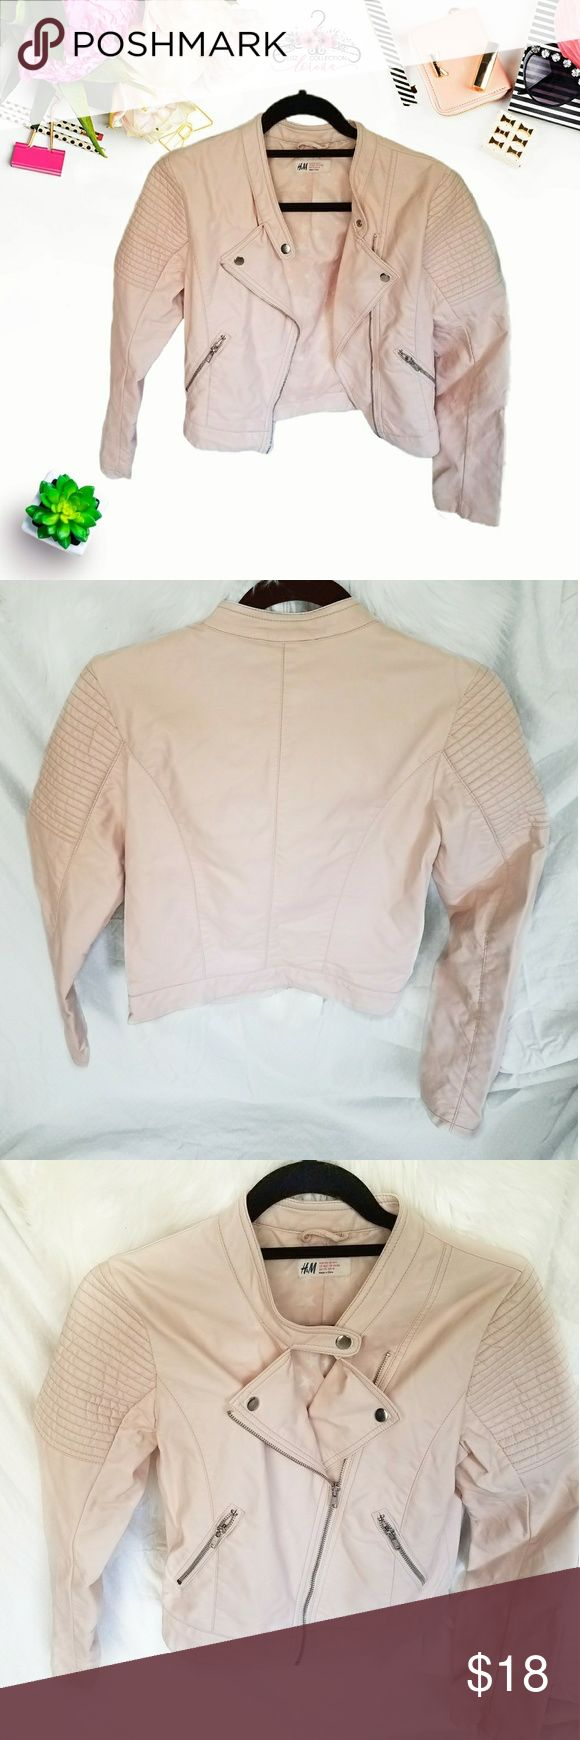 H&M Pink Moto Jacket for Girls Super cute in good